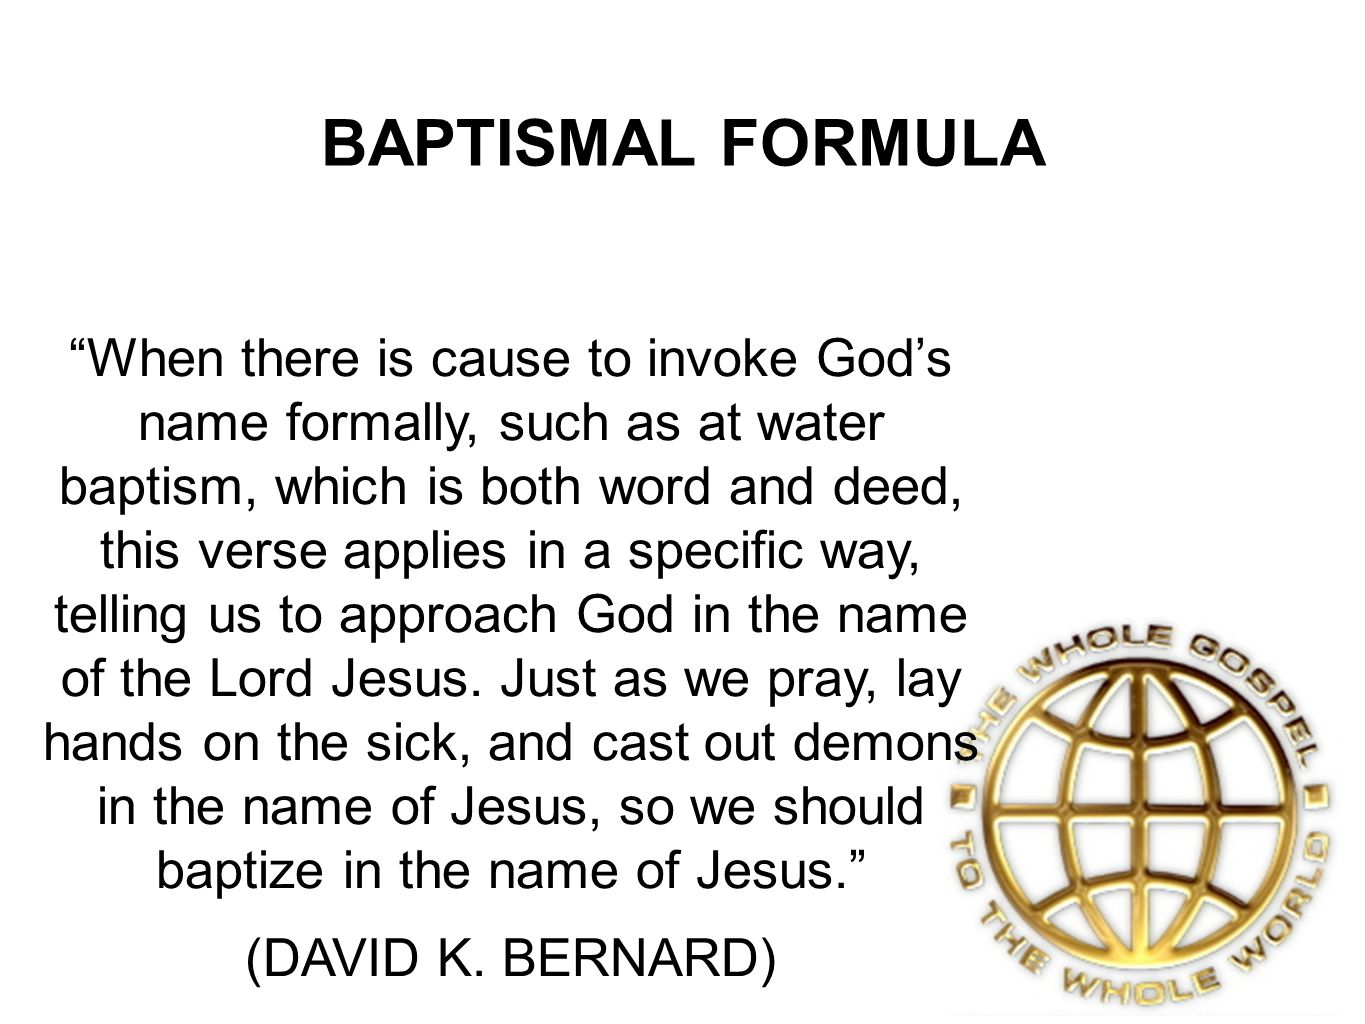 BAPTISMAL FORMULA When there is cause to invoke Gods name formally, such as at water baptism, which is both word and deed, this verse applies in a specific way, telling us to approach God in the name of the Lord Jesus.